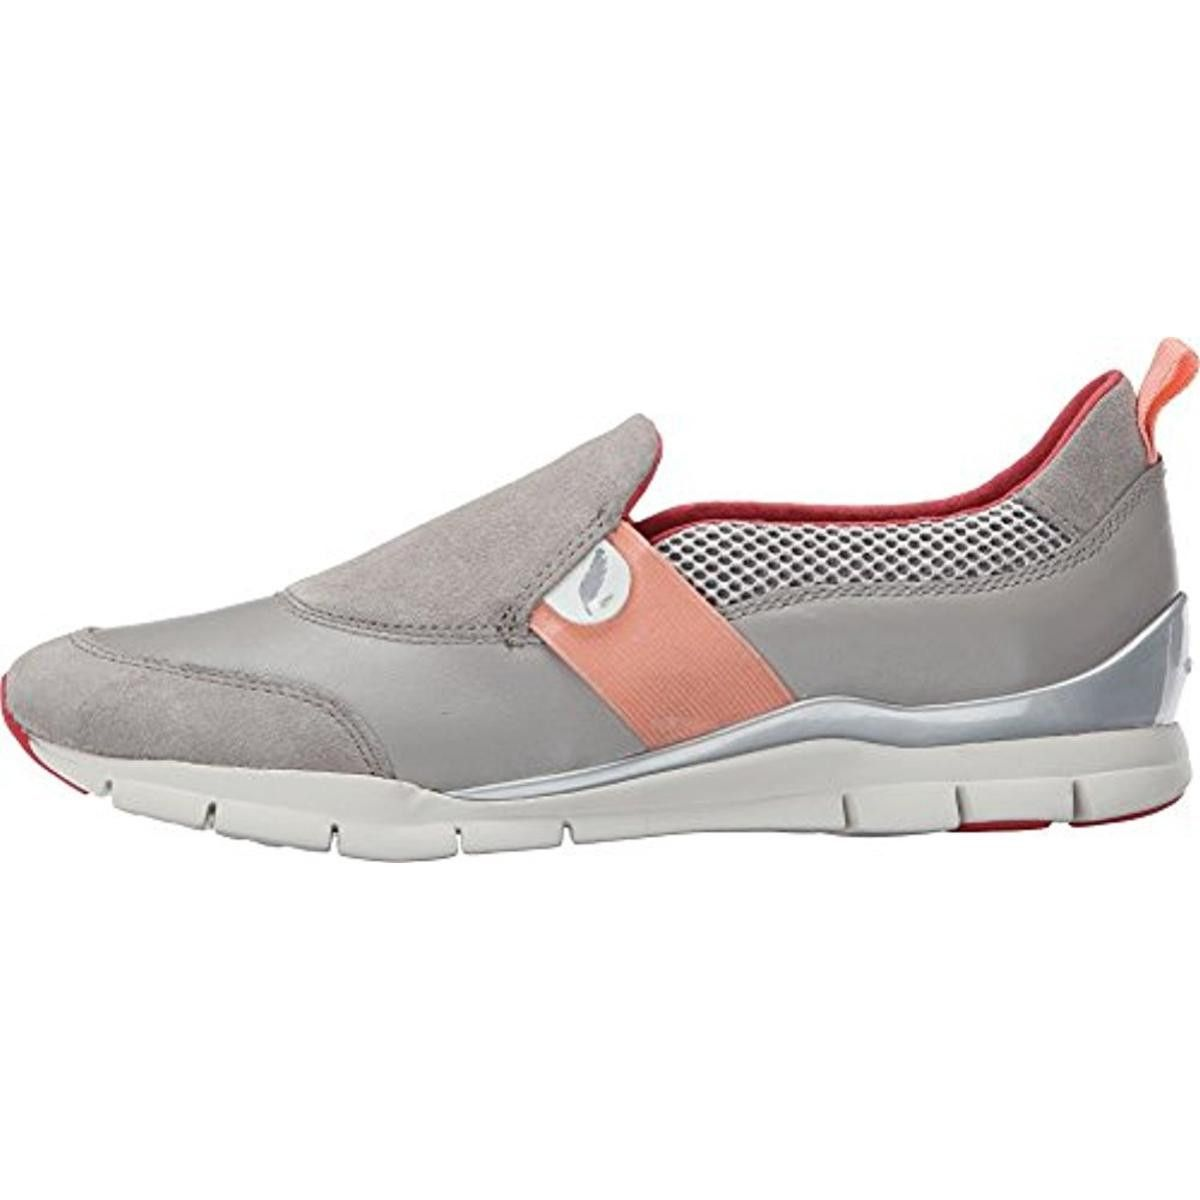 Geox Womens D Sukie Leather Casual Fashion Sneakers